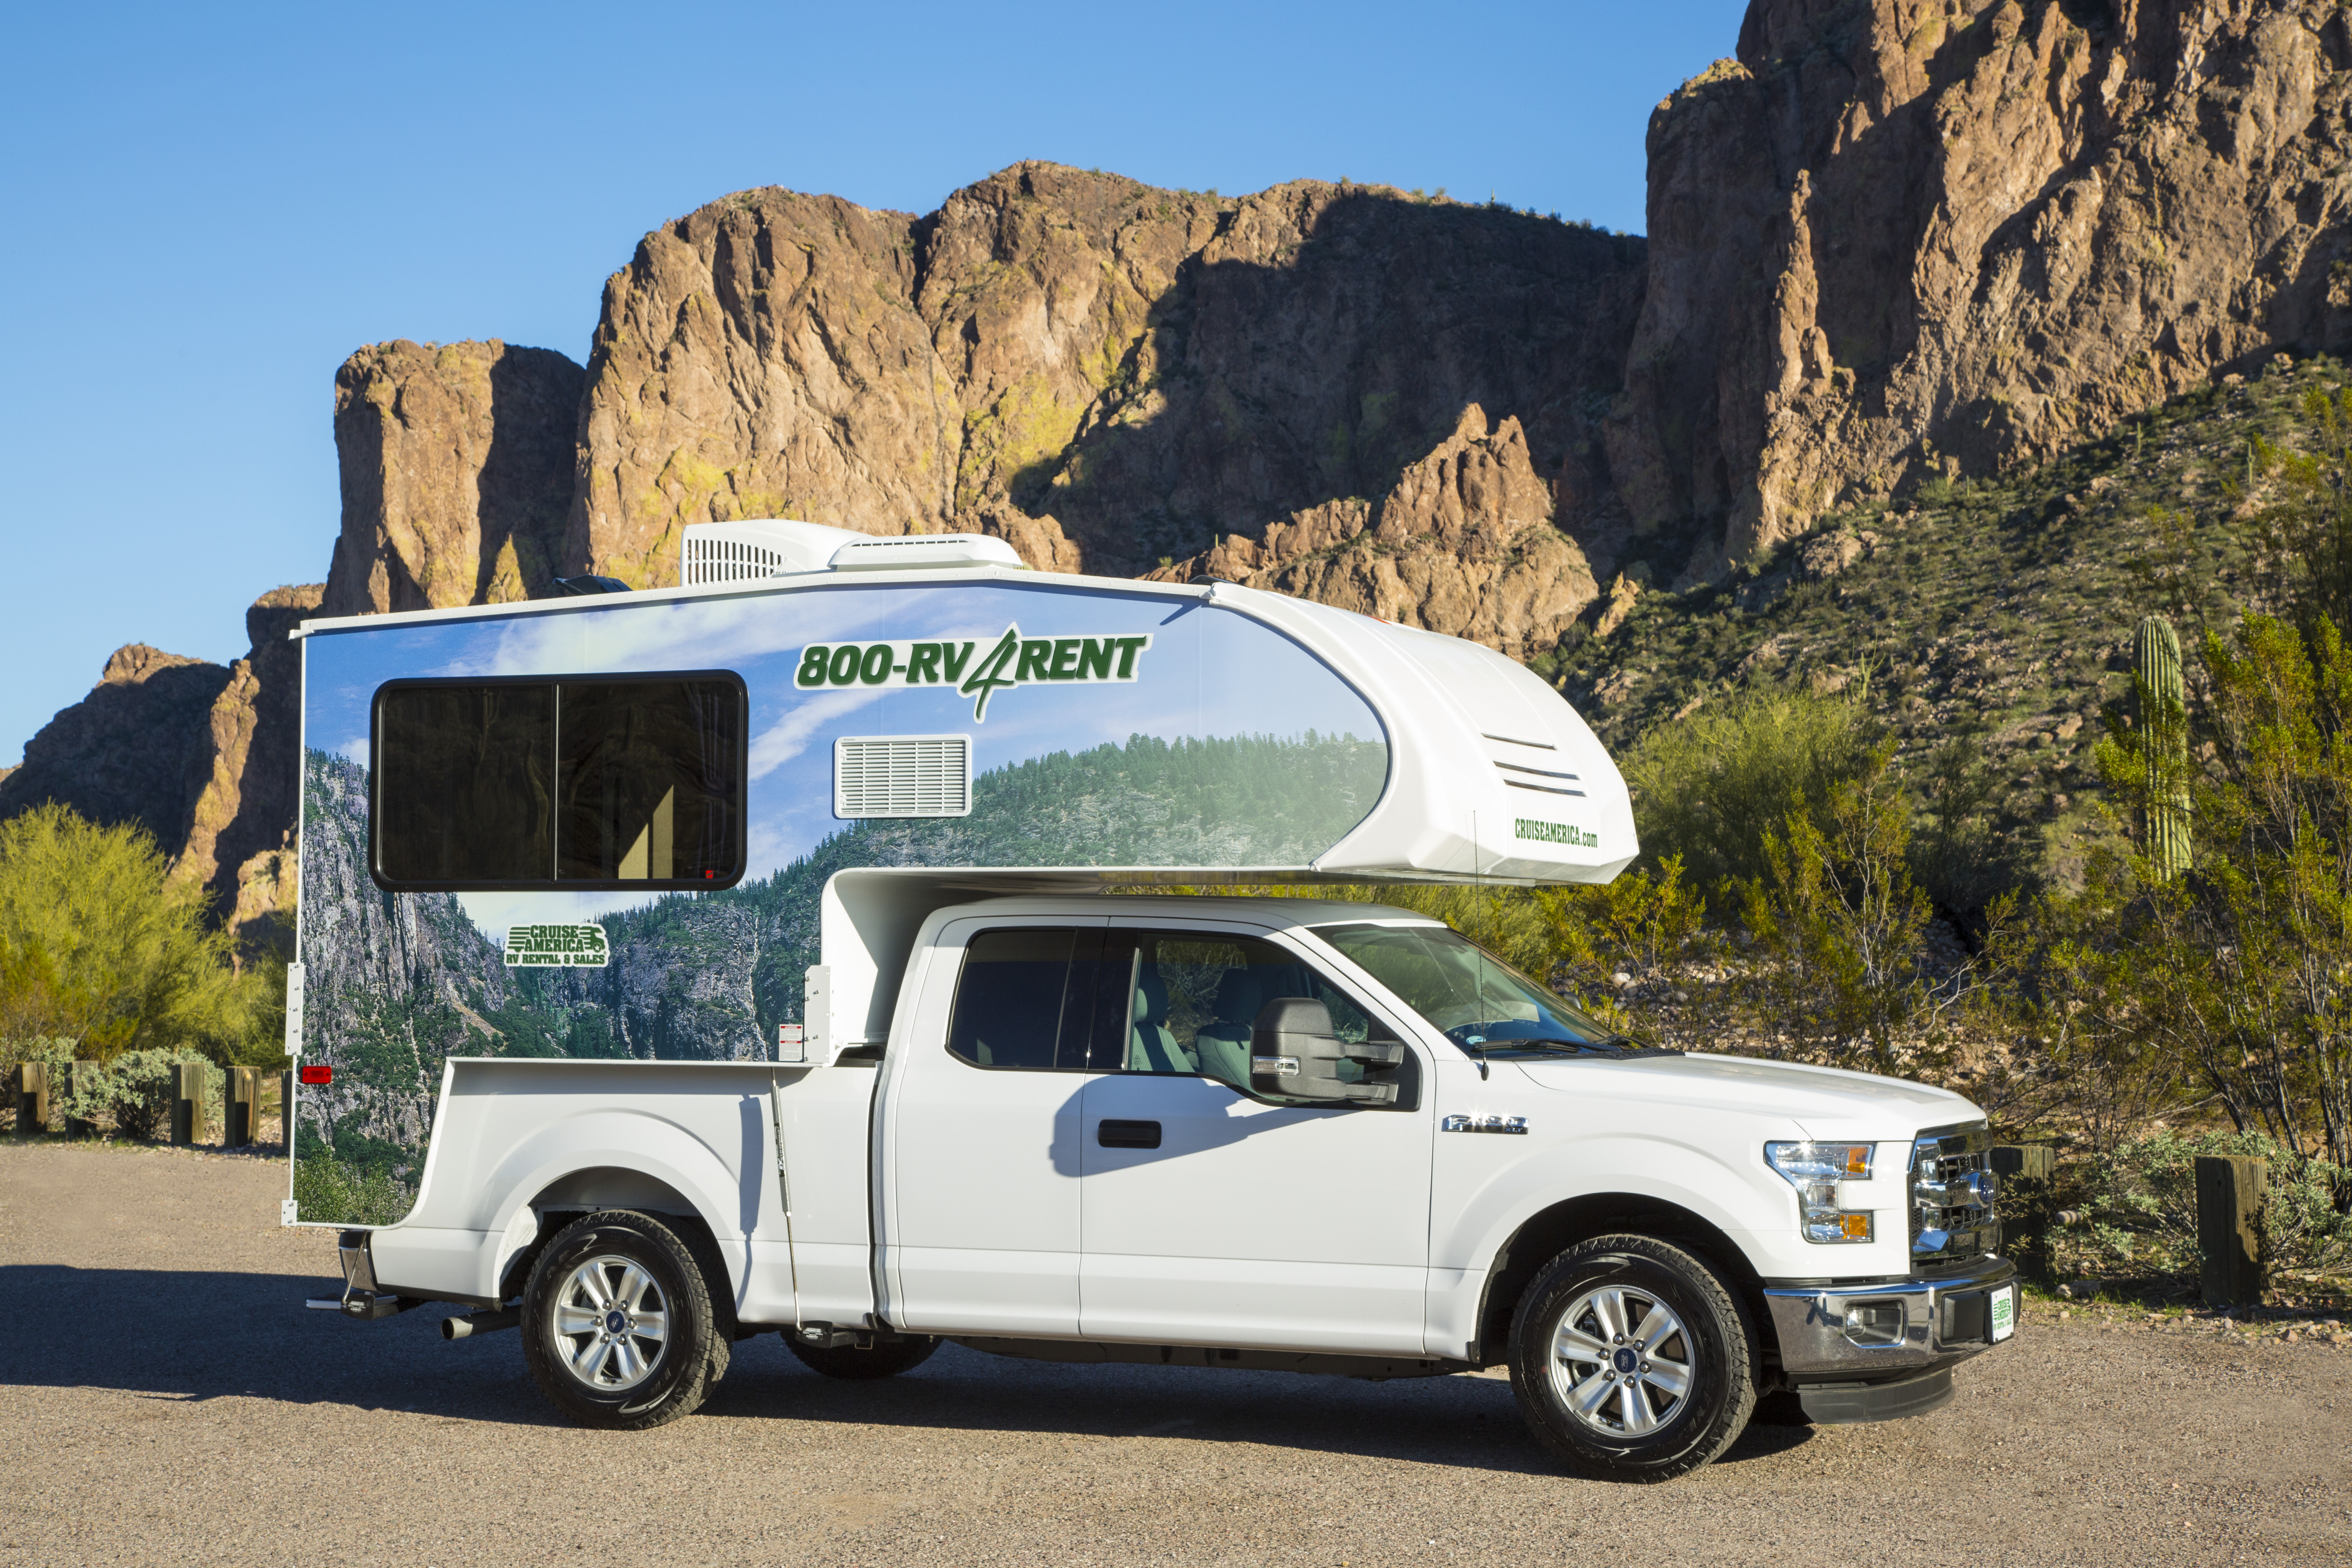 Cruise america t17 truck camper usa amp canada motorhome holidays - Outside